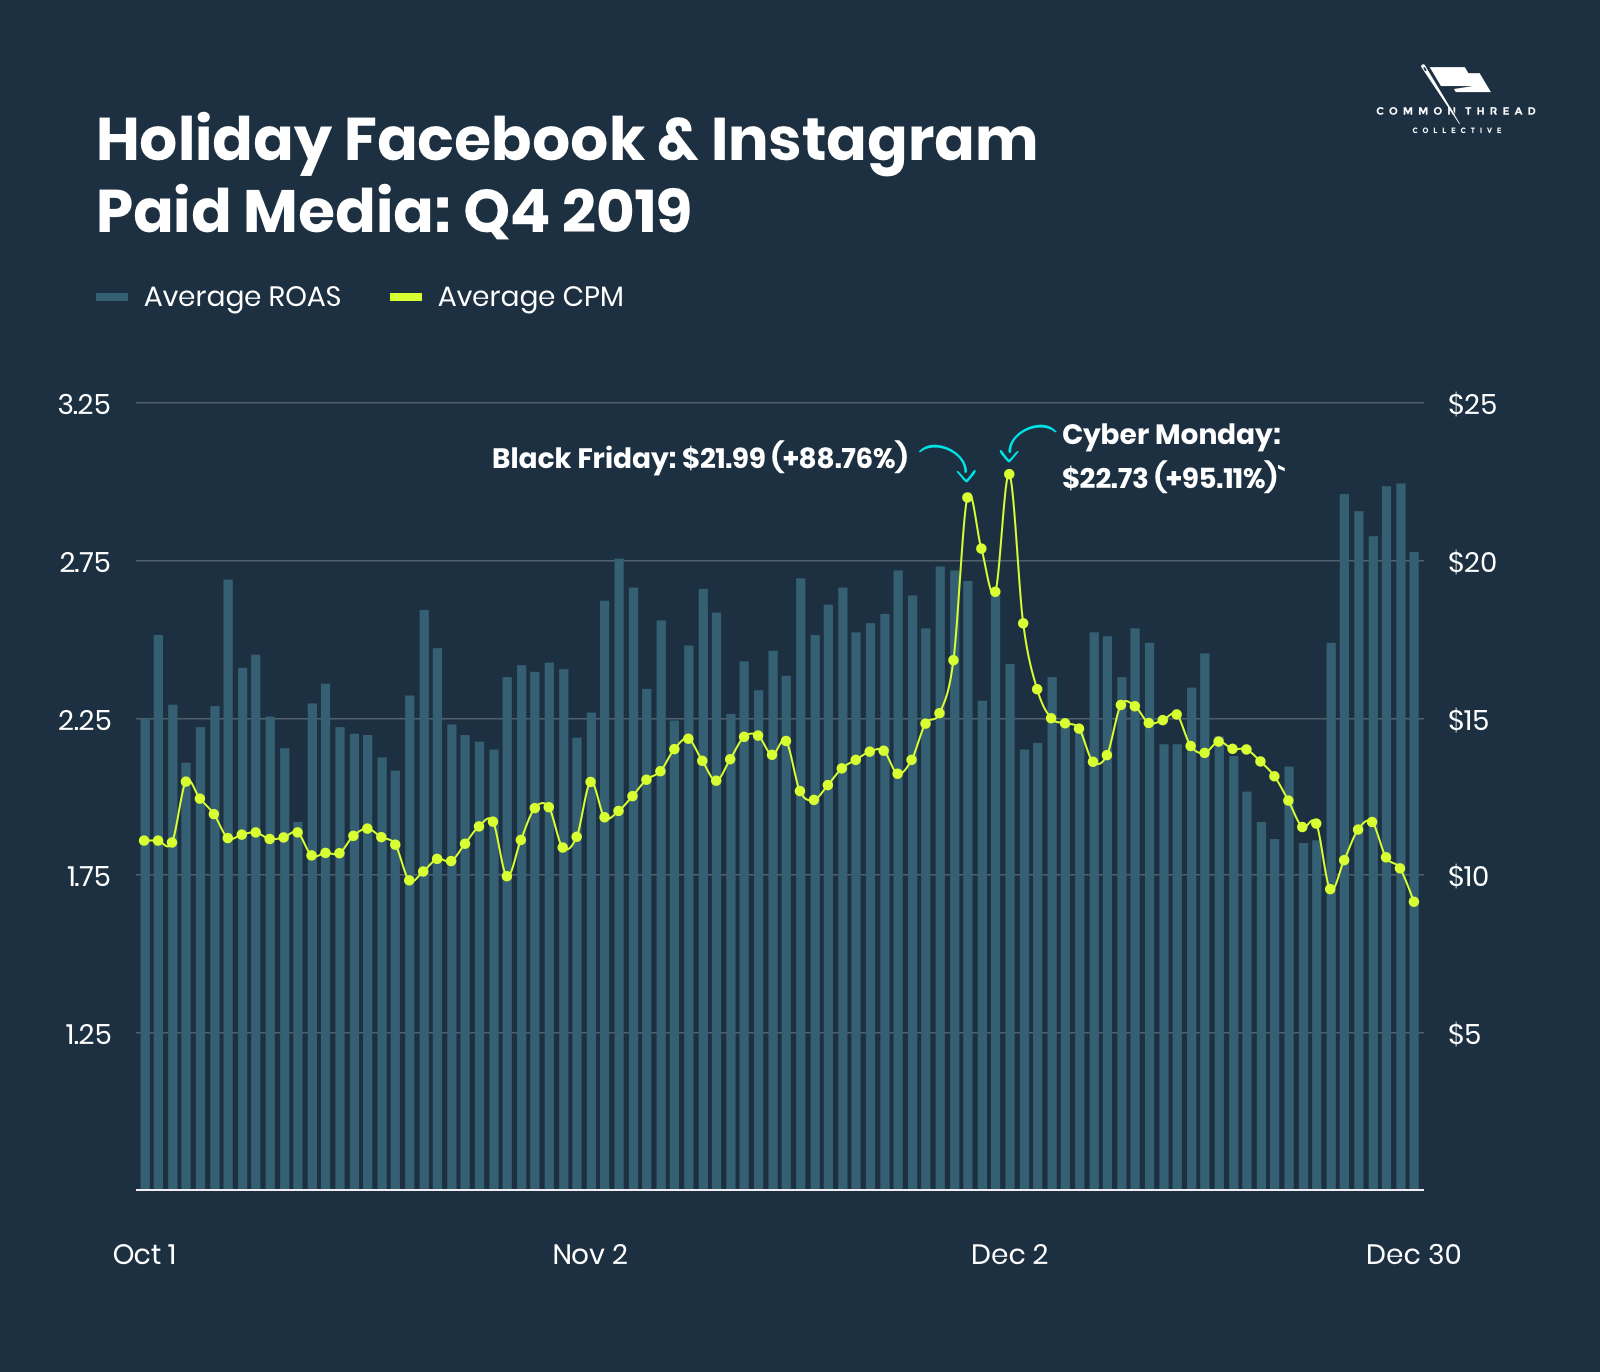 Holiday Facebook and Instagram Paid Media: Q4 2019, showing spikes for Black Friday and Cyber Monday